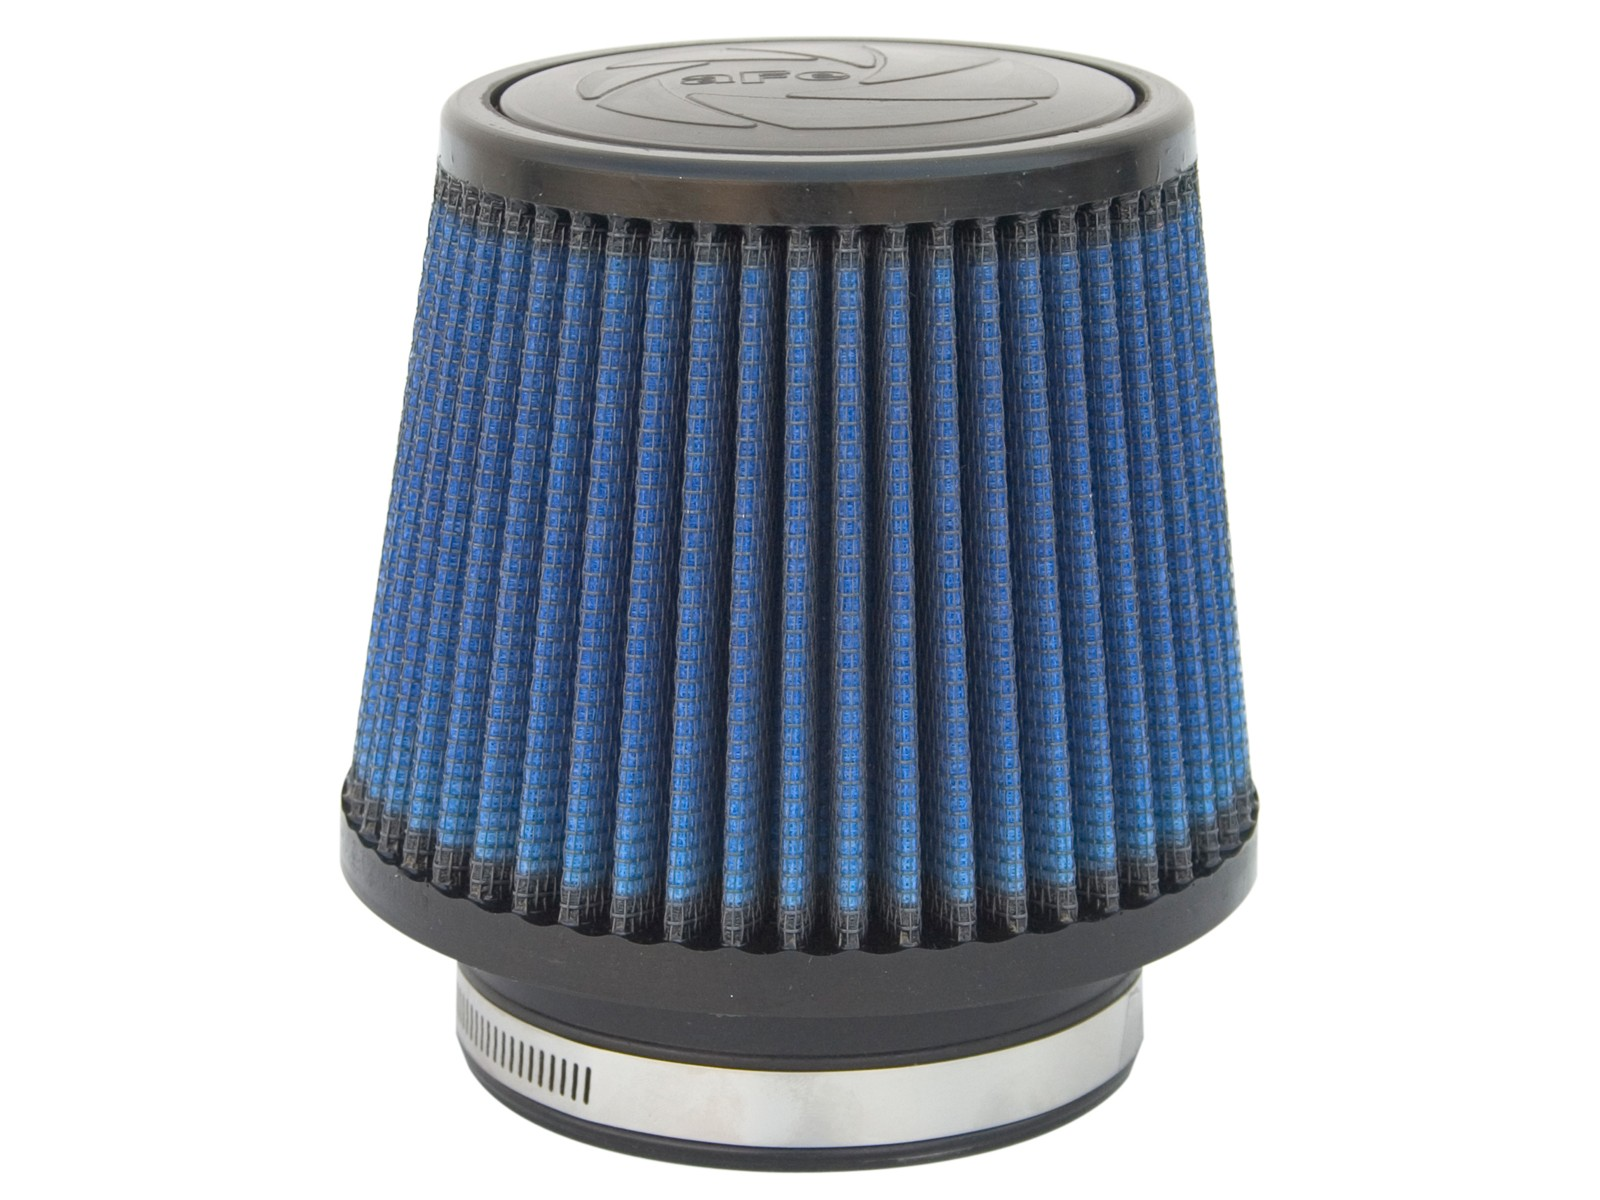 aFe POWER 24-40009 Magnum FLOW Pro 5R Air Filter